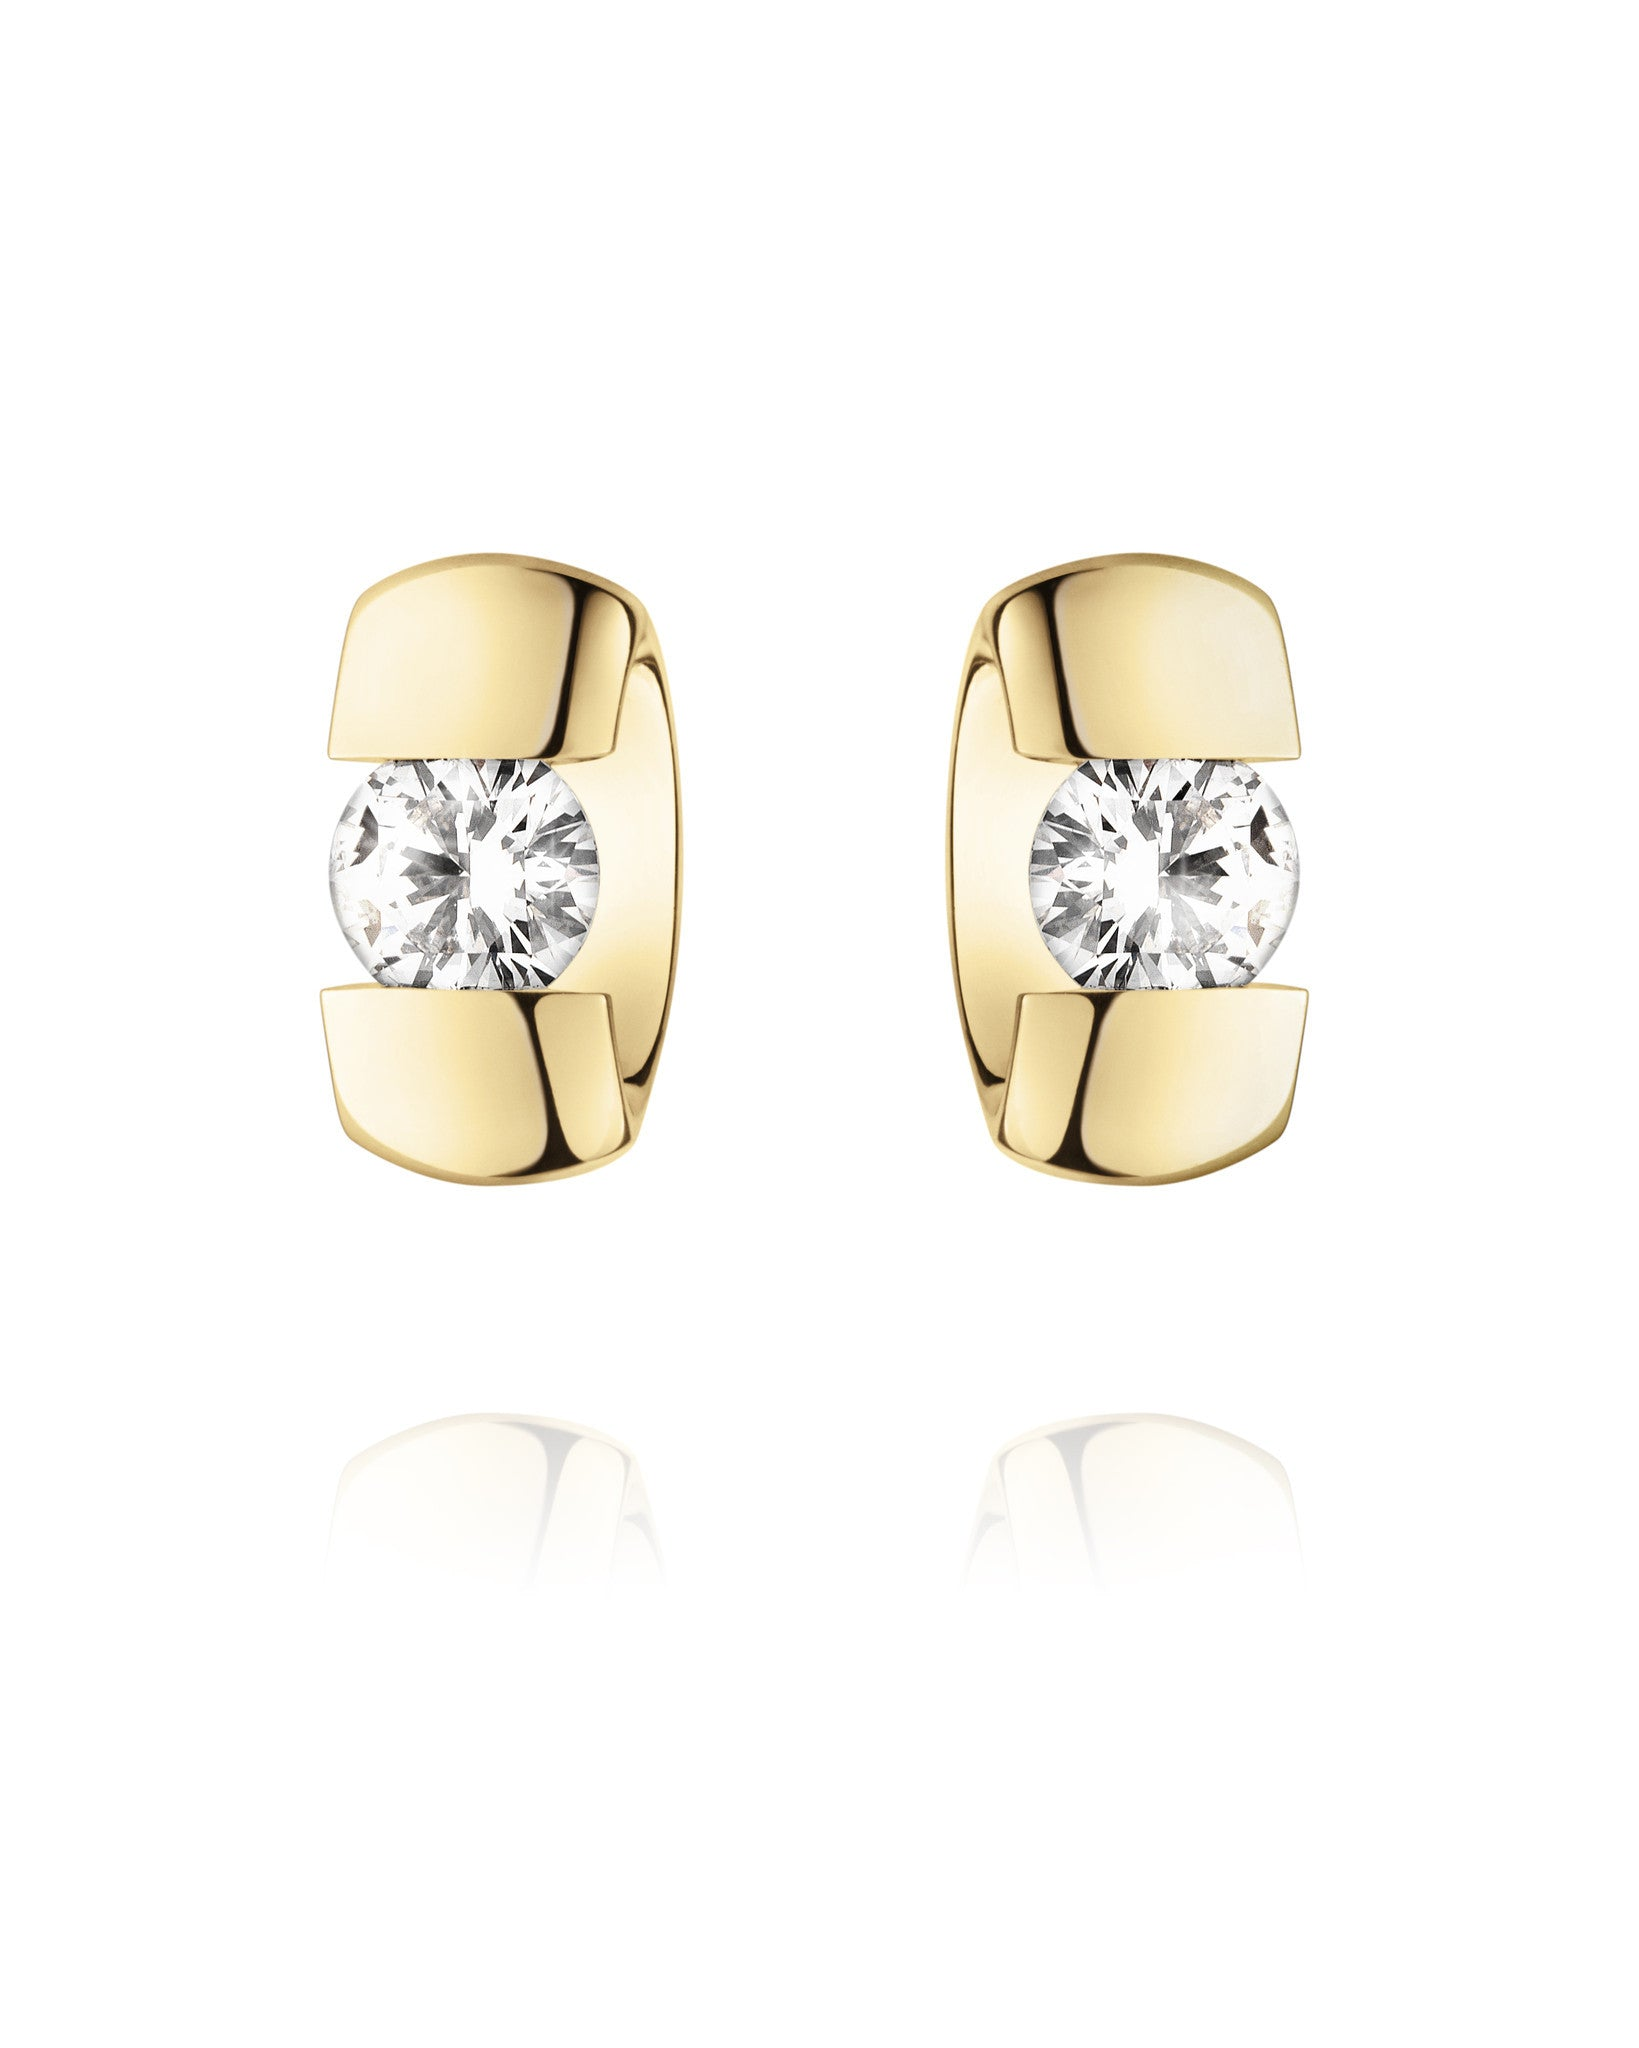 Georg Jensen 18ct Yellow Gold 0.40ct Diamond Centenary Earrings